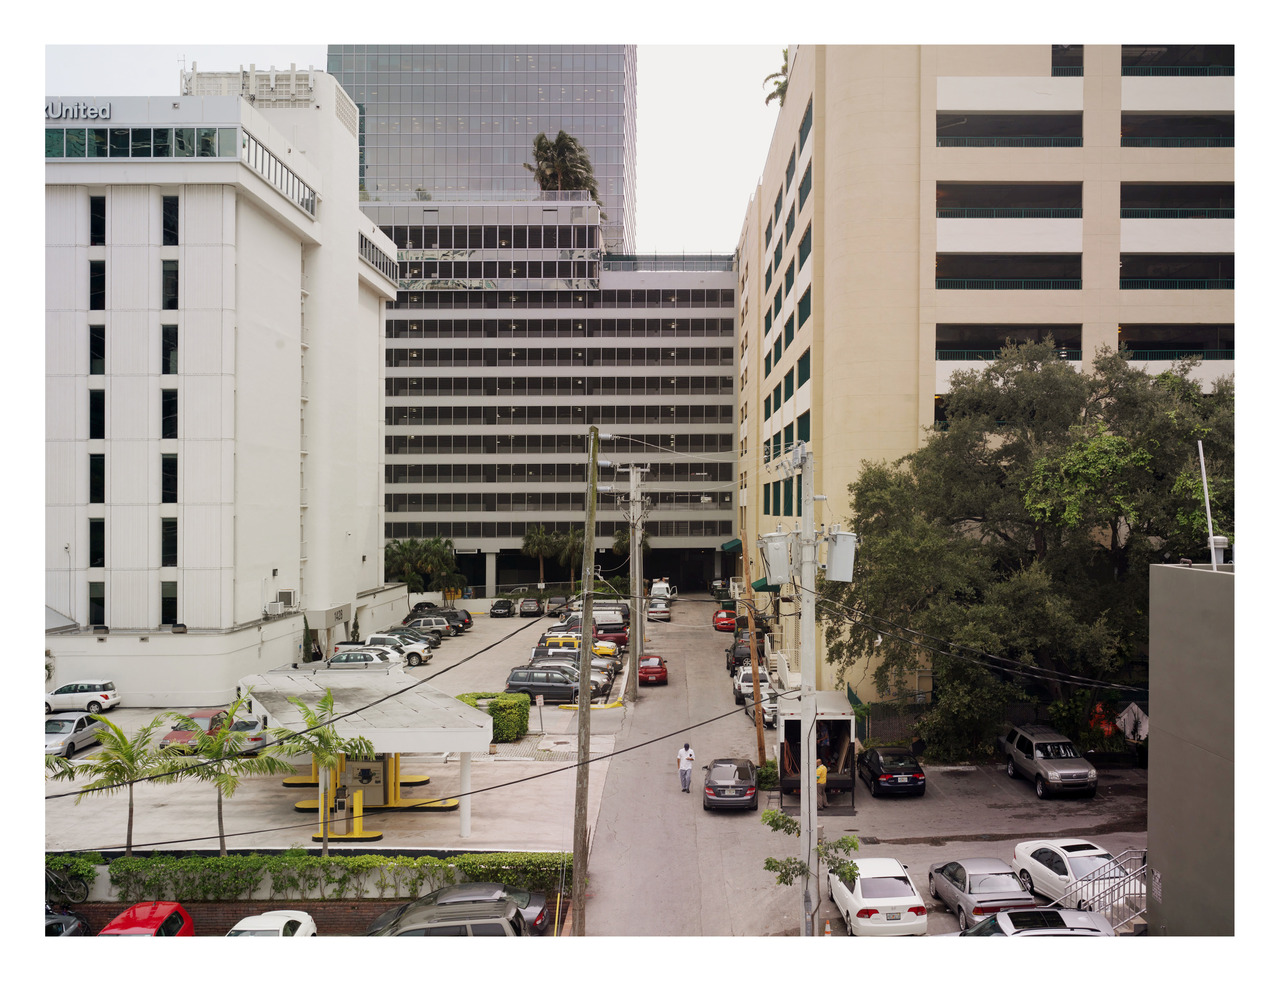 postcardsfromamerica: Citizen, downtown Miami, Florida Donovan Wylie